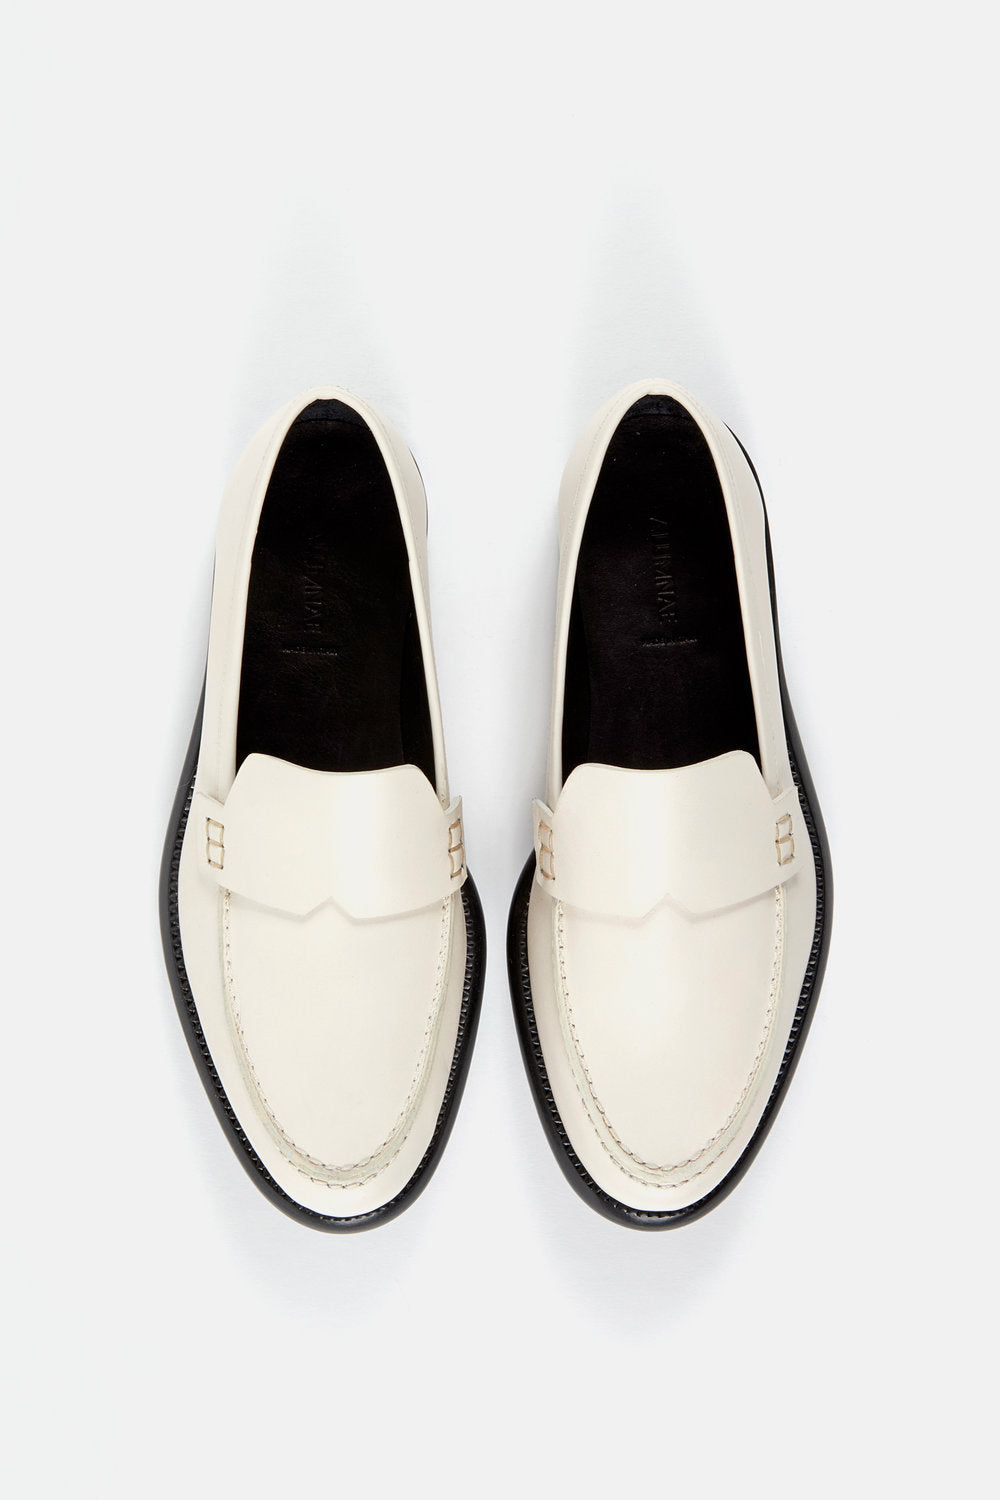 Minimalist Loafer Off White Calf